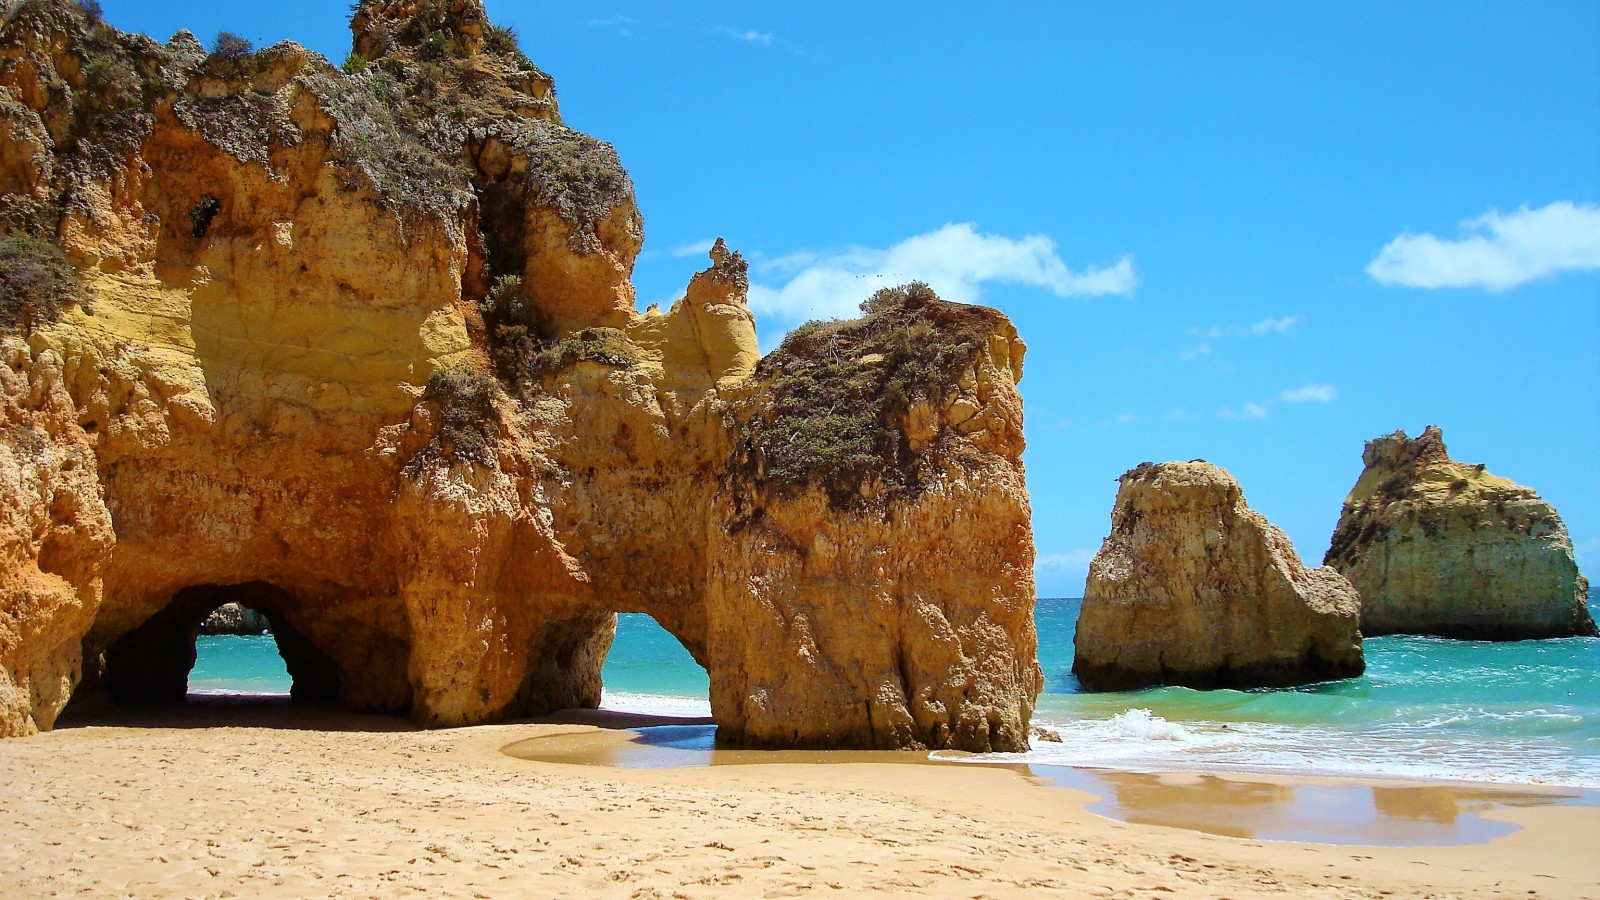 Fascinating rock formation embellish the Algarve's coastline